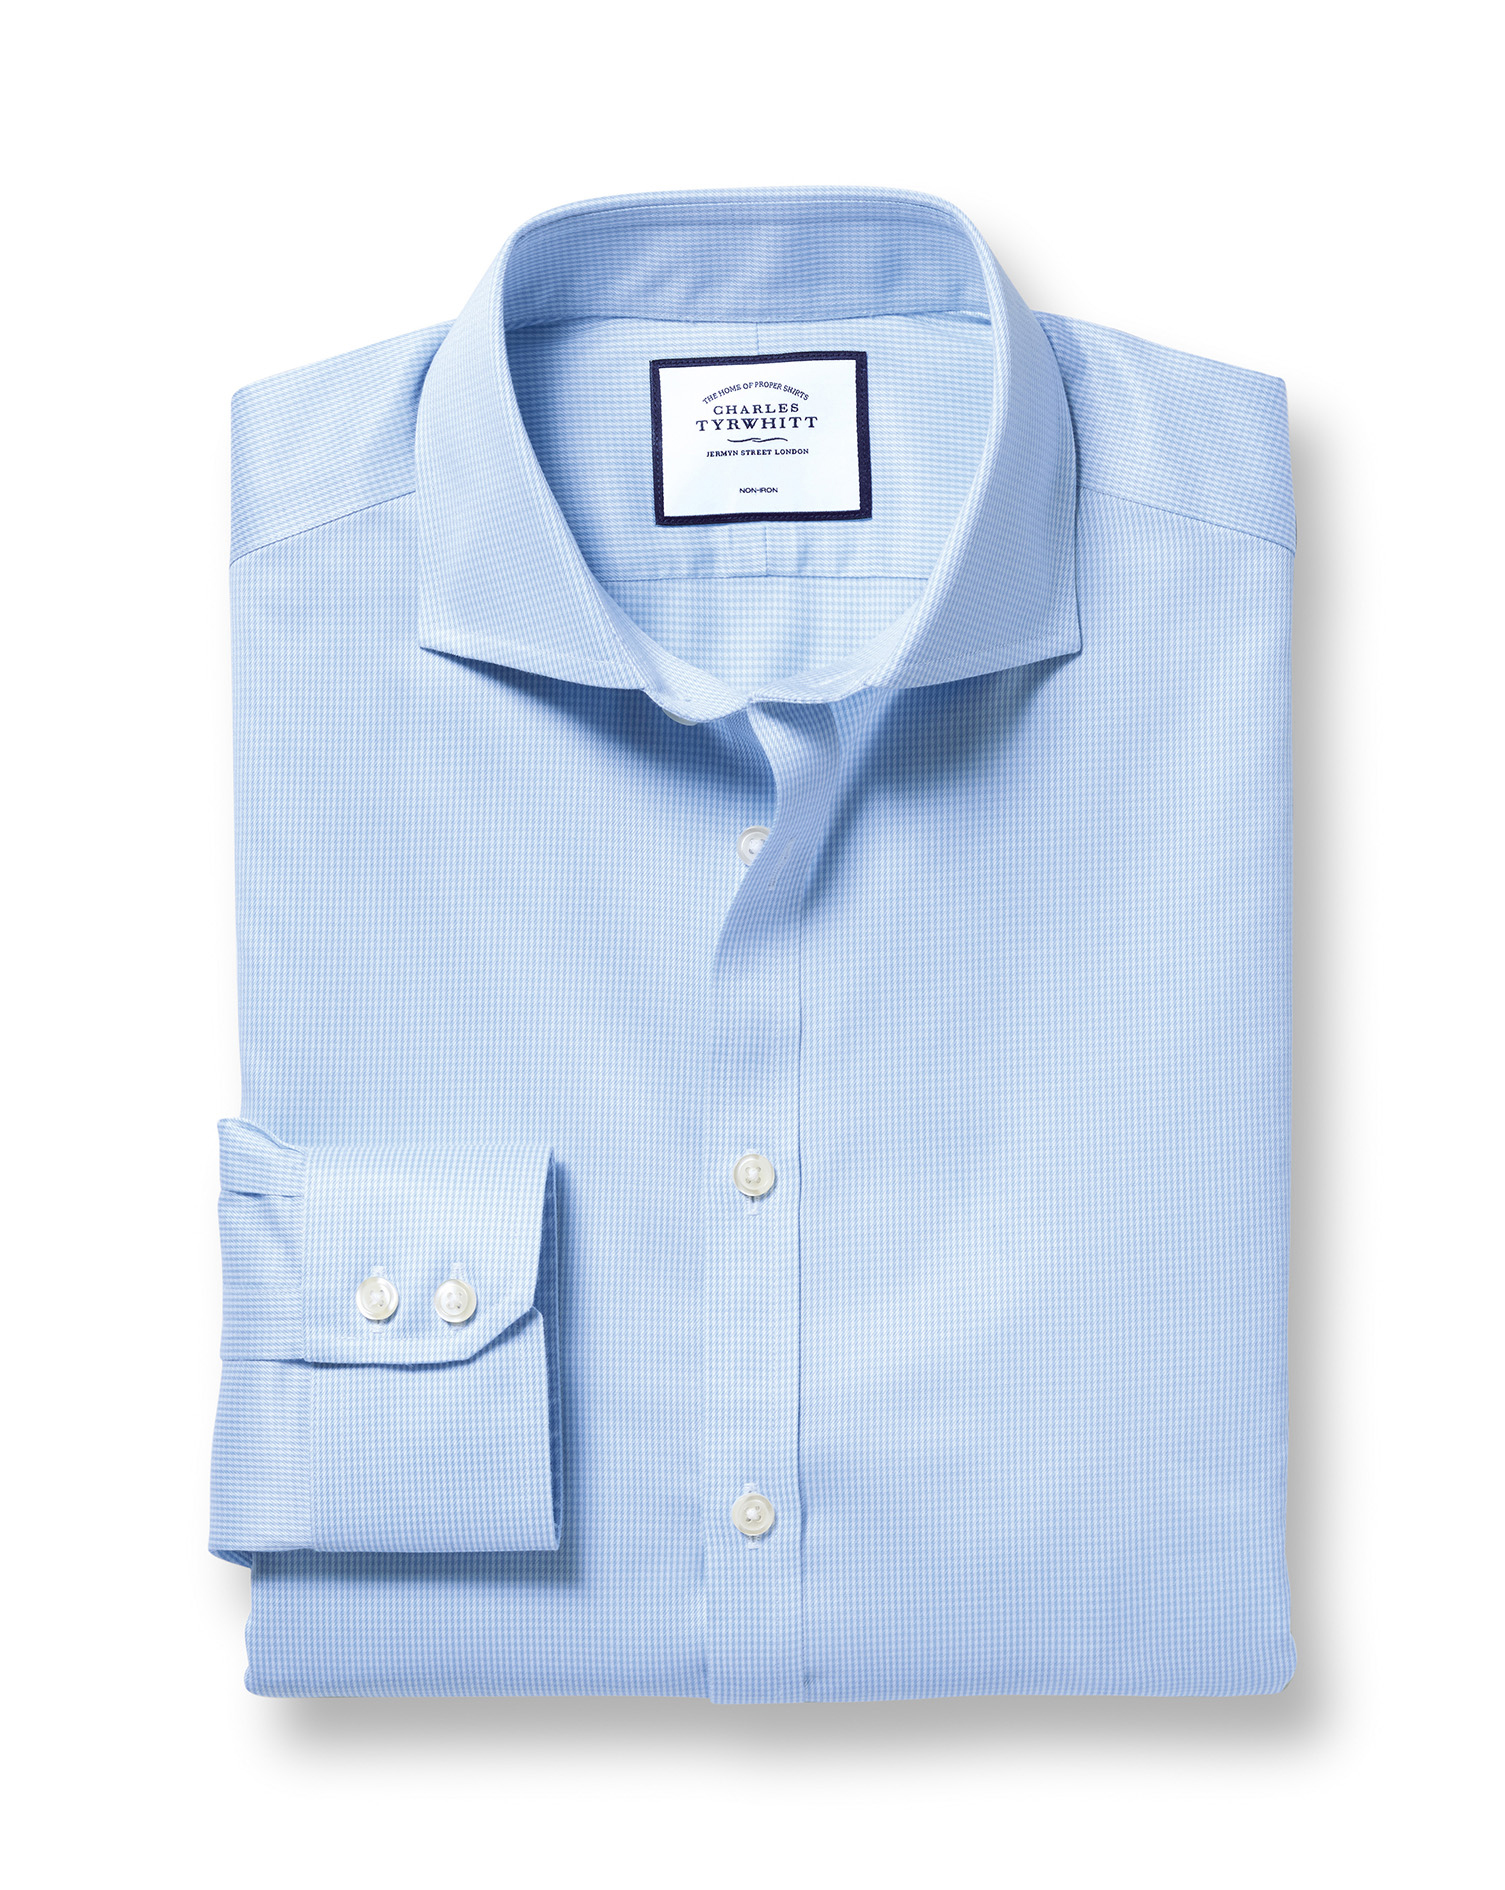 Extra Slim Fit Cutaway Non-Iron Puppytooth Sky Blue Cotton Formal Shirt Double Cuff Size 15.5/34 by